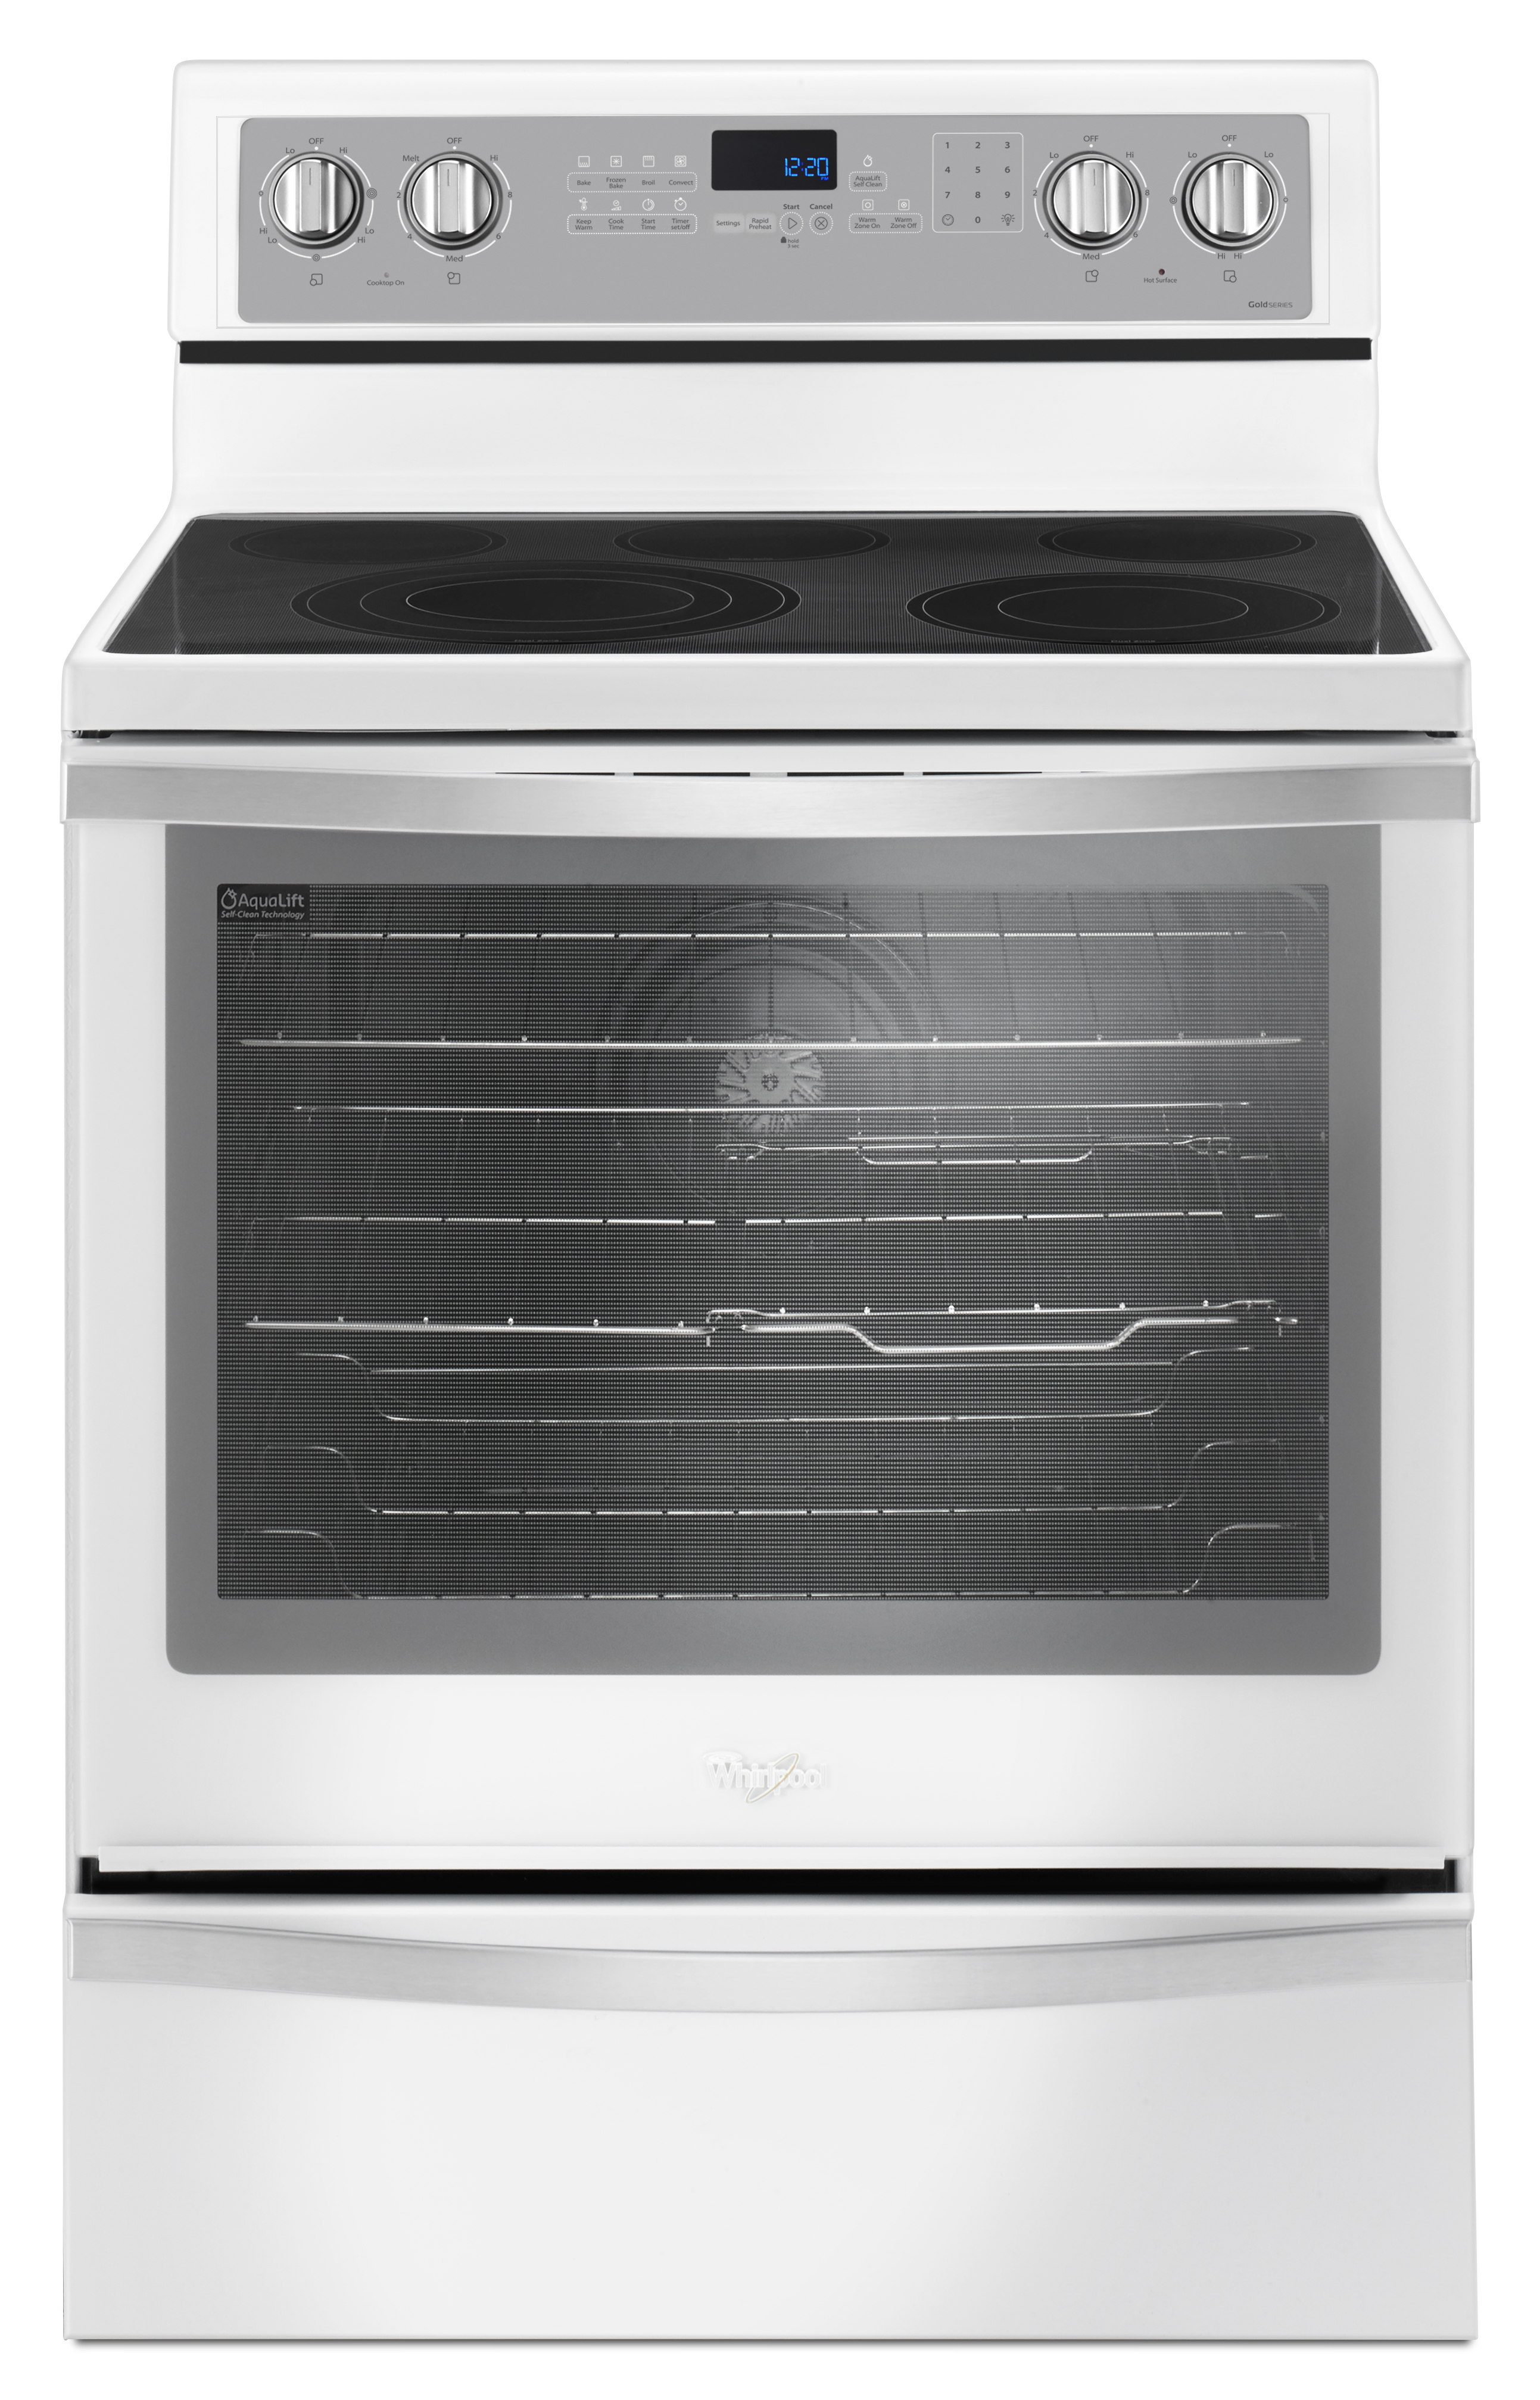 Whirlpool WFE745H0FH 6.4 cu. ft. Freestanding Electric Range w/ True Convection – White